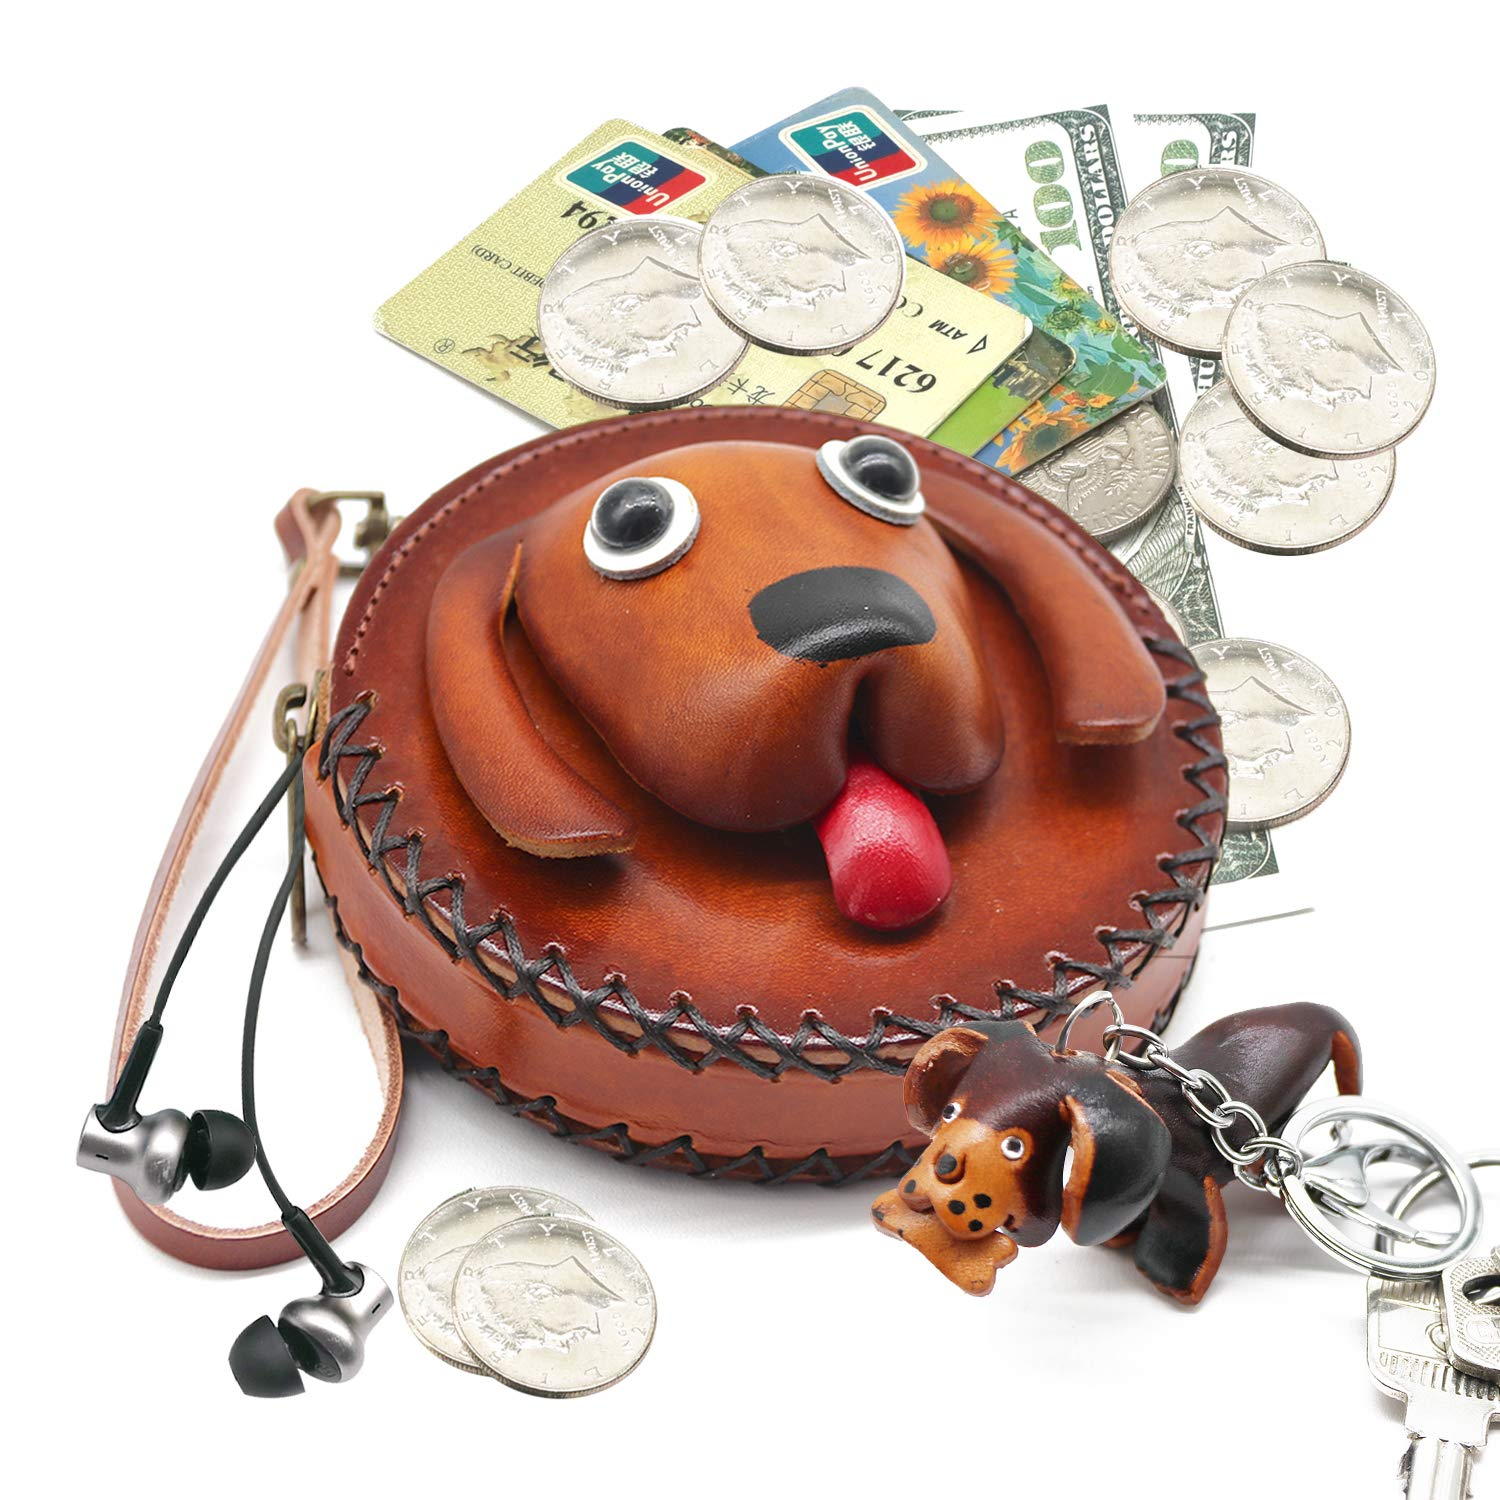 f8113002a68bd Coin Purse for Women Animal Pouches Leather Handcrafted Round Change Purse  with Strap Keyring